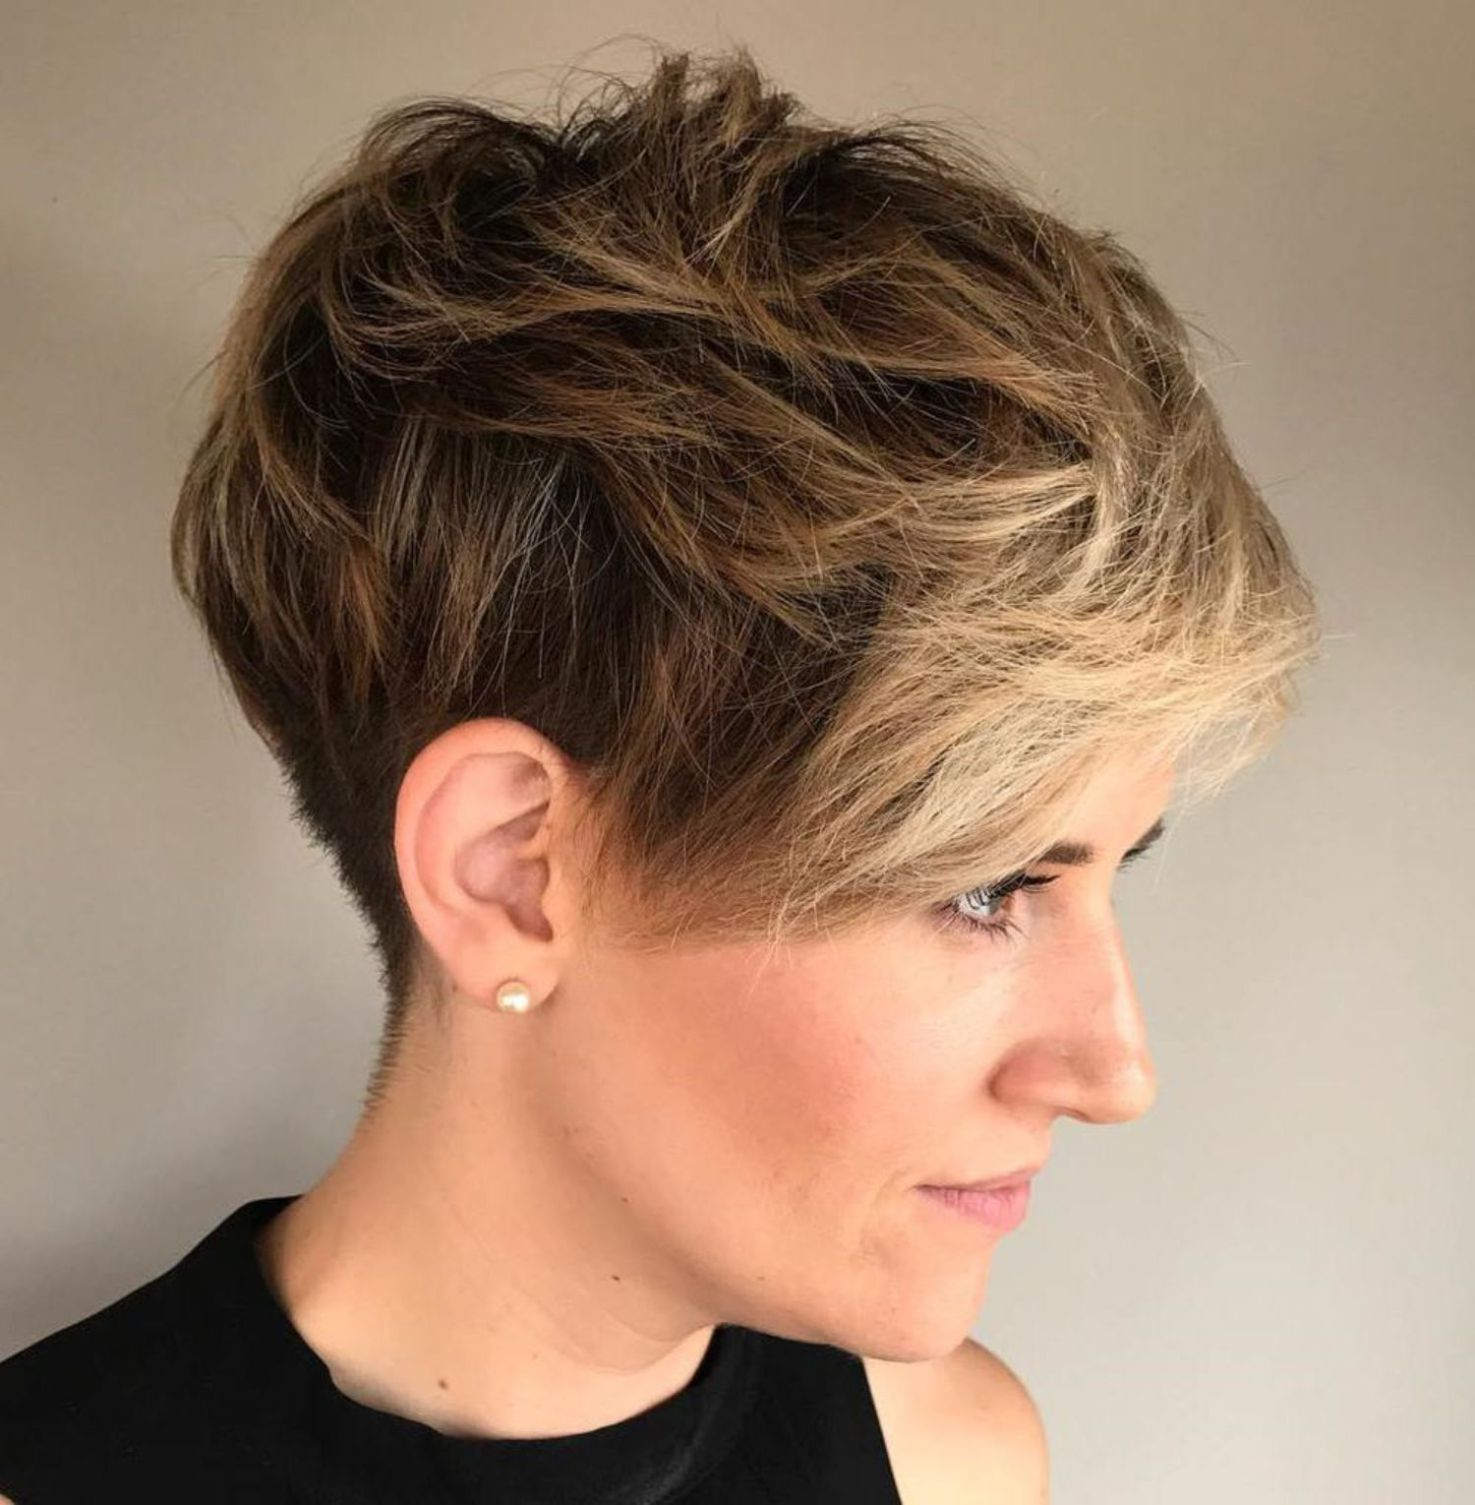 Messy Tapered Pixie Pixie Haircut For Thick Hair Thick Hair Pixie Thick Hair Styles